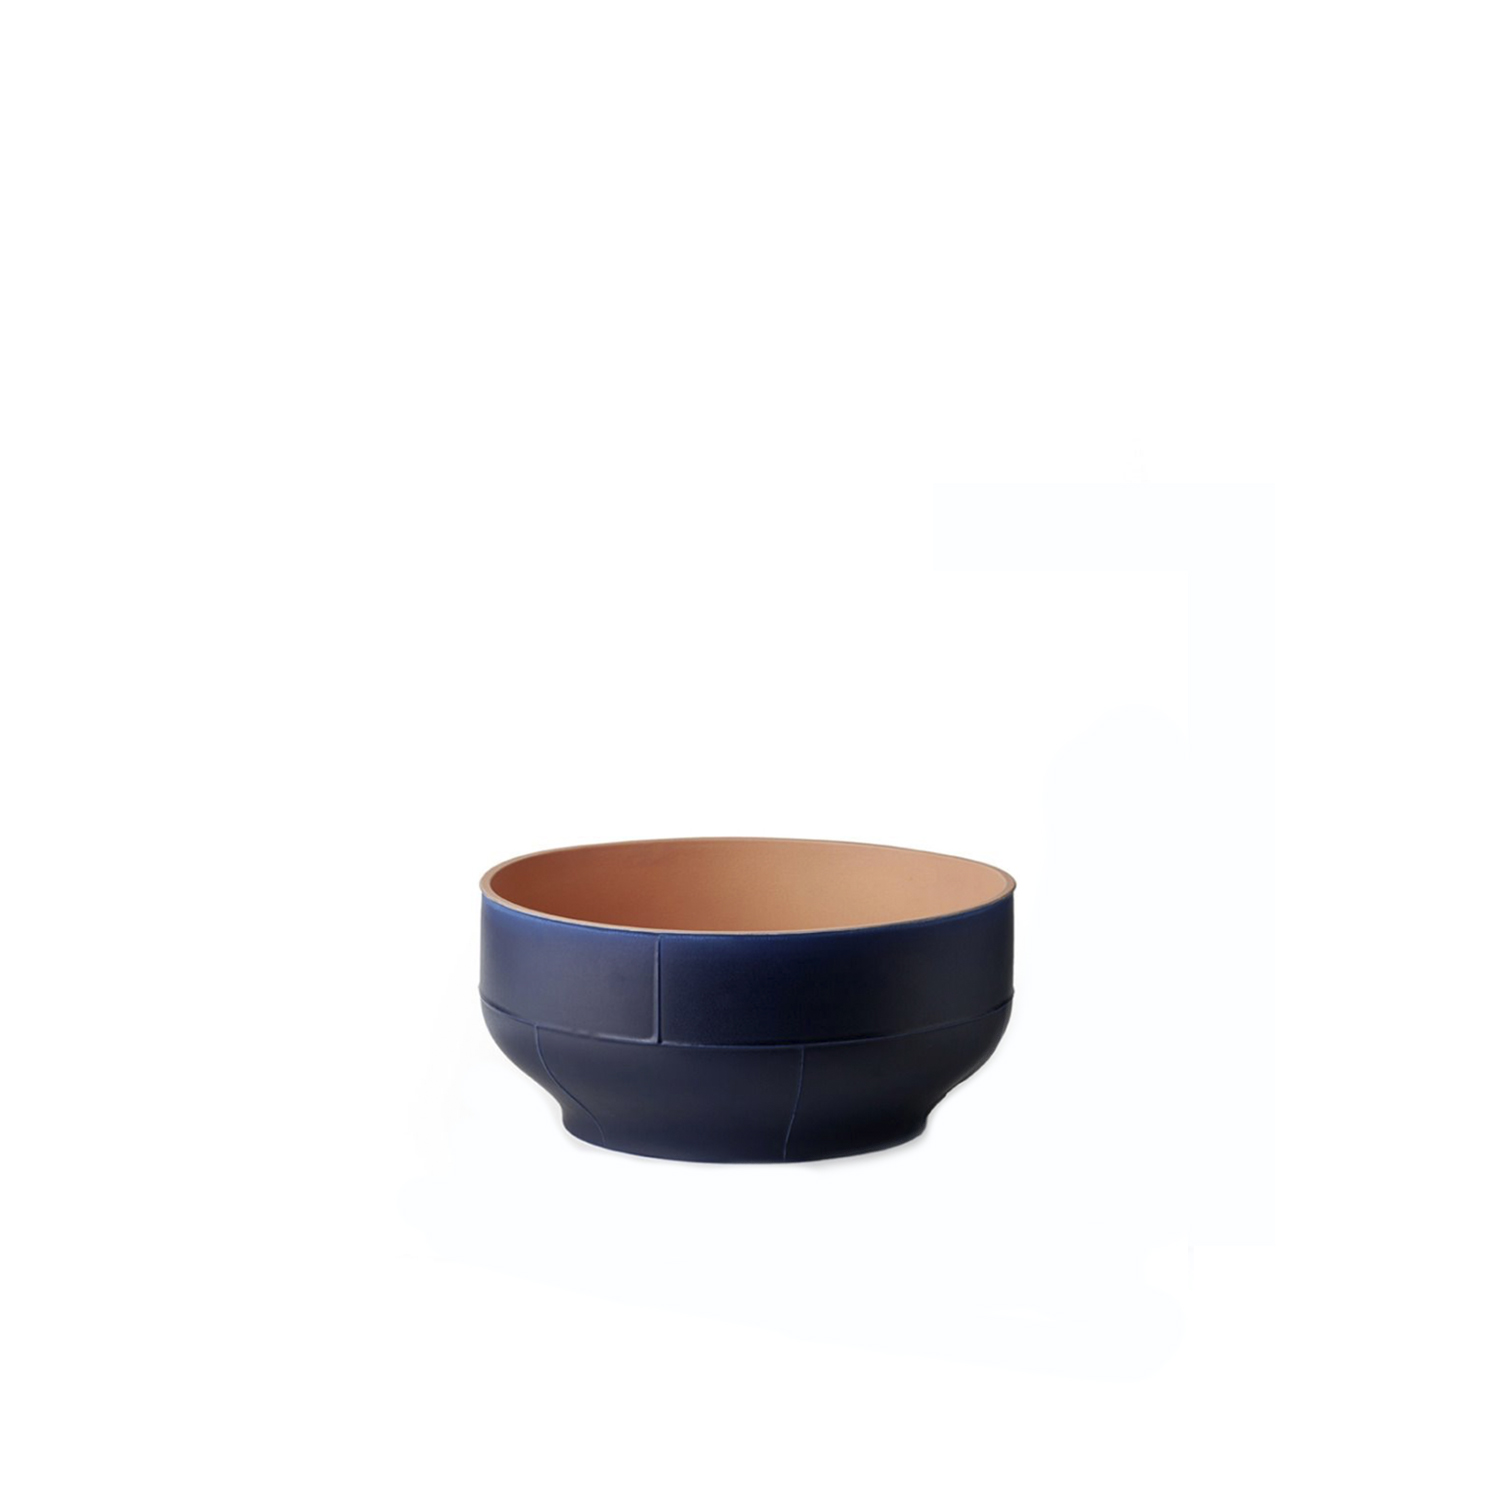 Two-Toned Bowl - Bowl. Cast in white clay. Two-tone matt glaze, orange on the inside and blue on the outside.